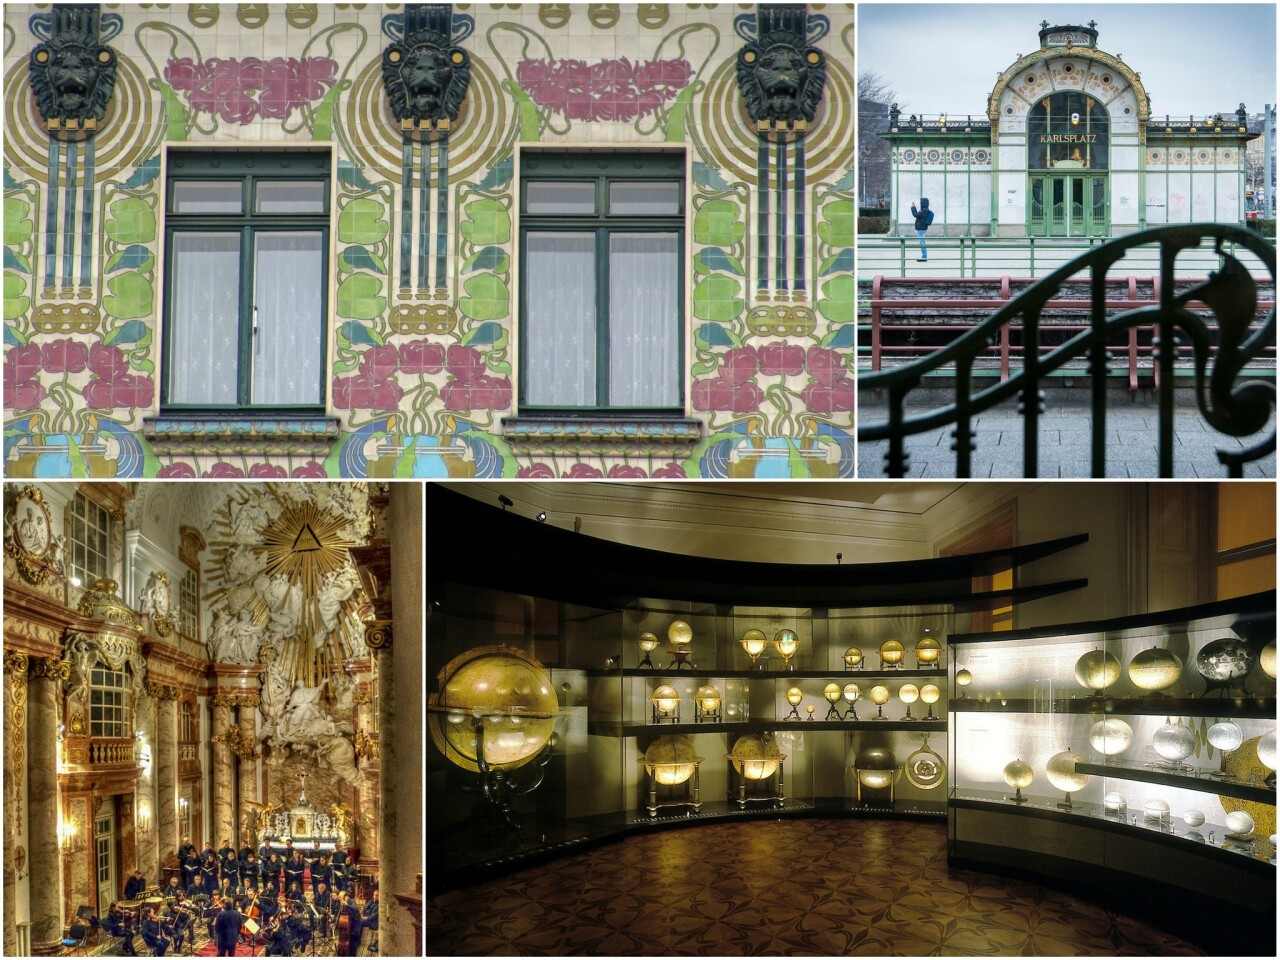 Arts, music and architecture in Vienna